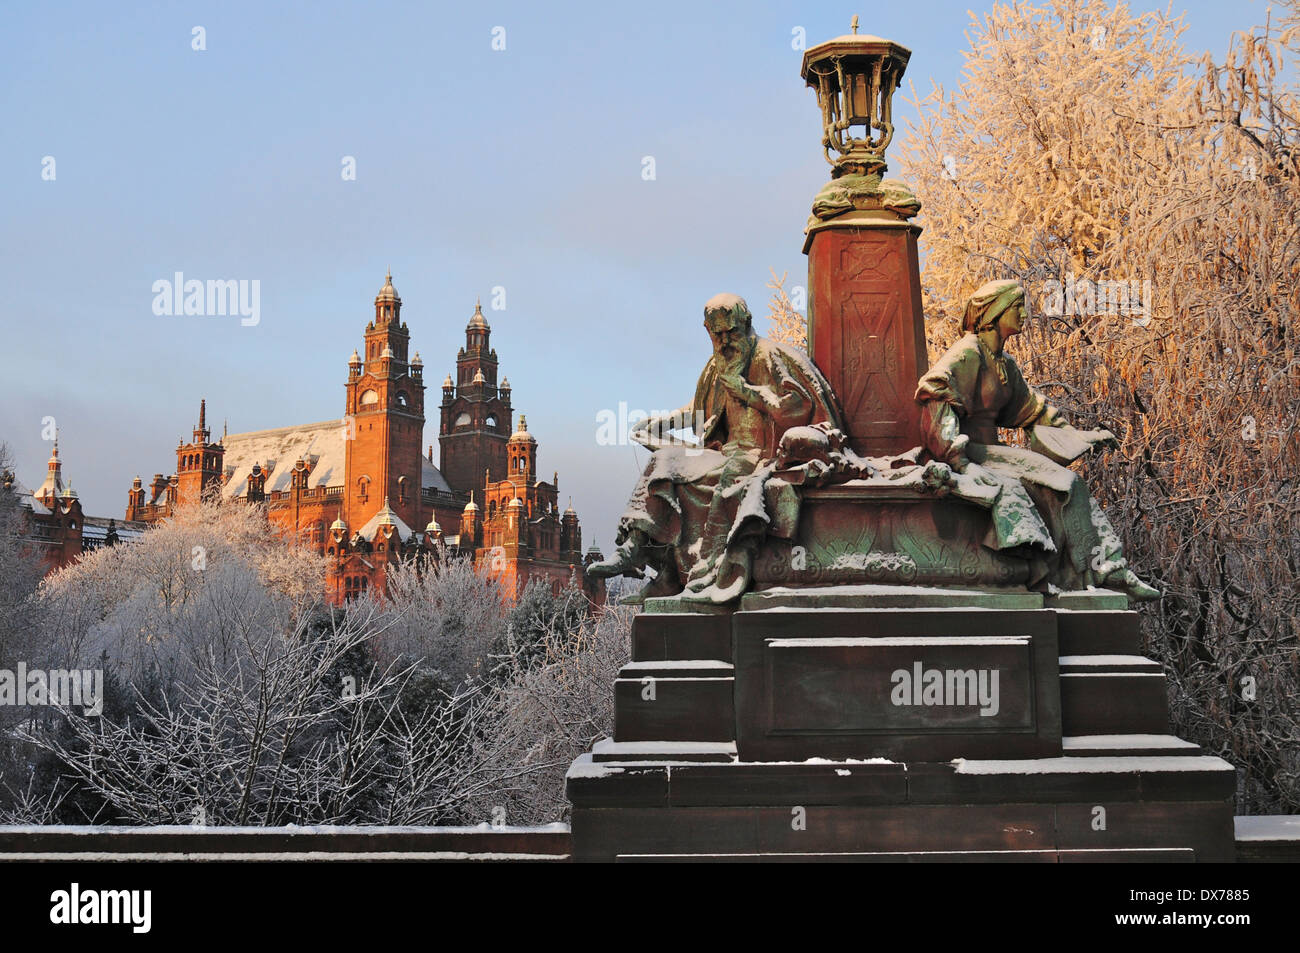 Statues on Kelvin Way by Kelvingrove Park,Glasgow,Scotland,dusted with snow and frost.Kelvingrove Art Gallery in the background - Stock Image